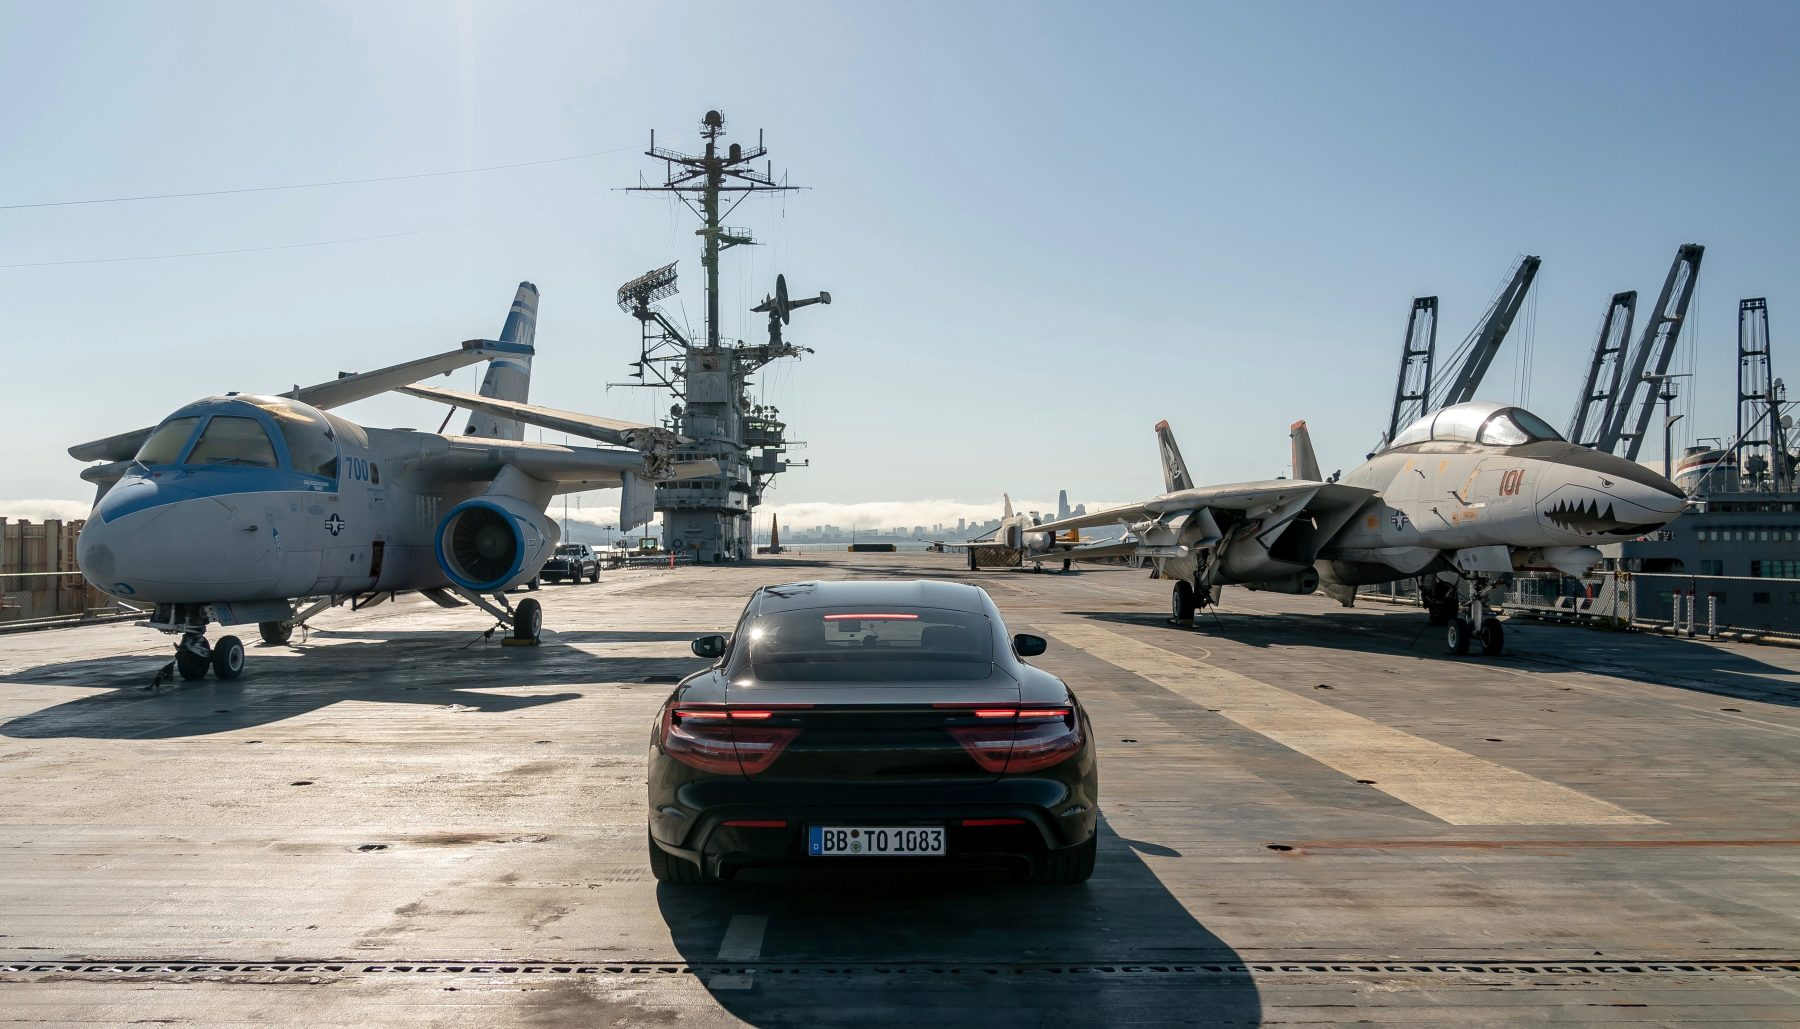 See an All-Electric Porsche Do 0-90-0 on an Aircraft Carrier